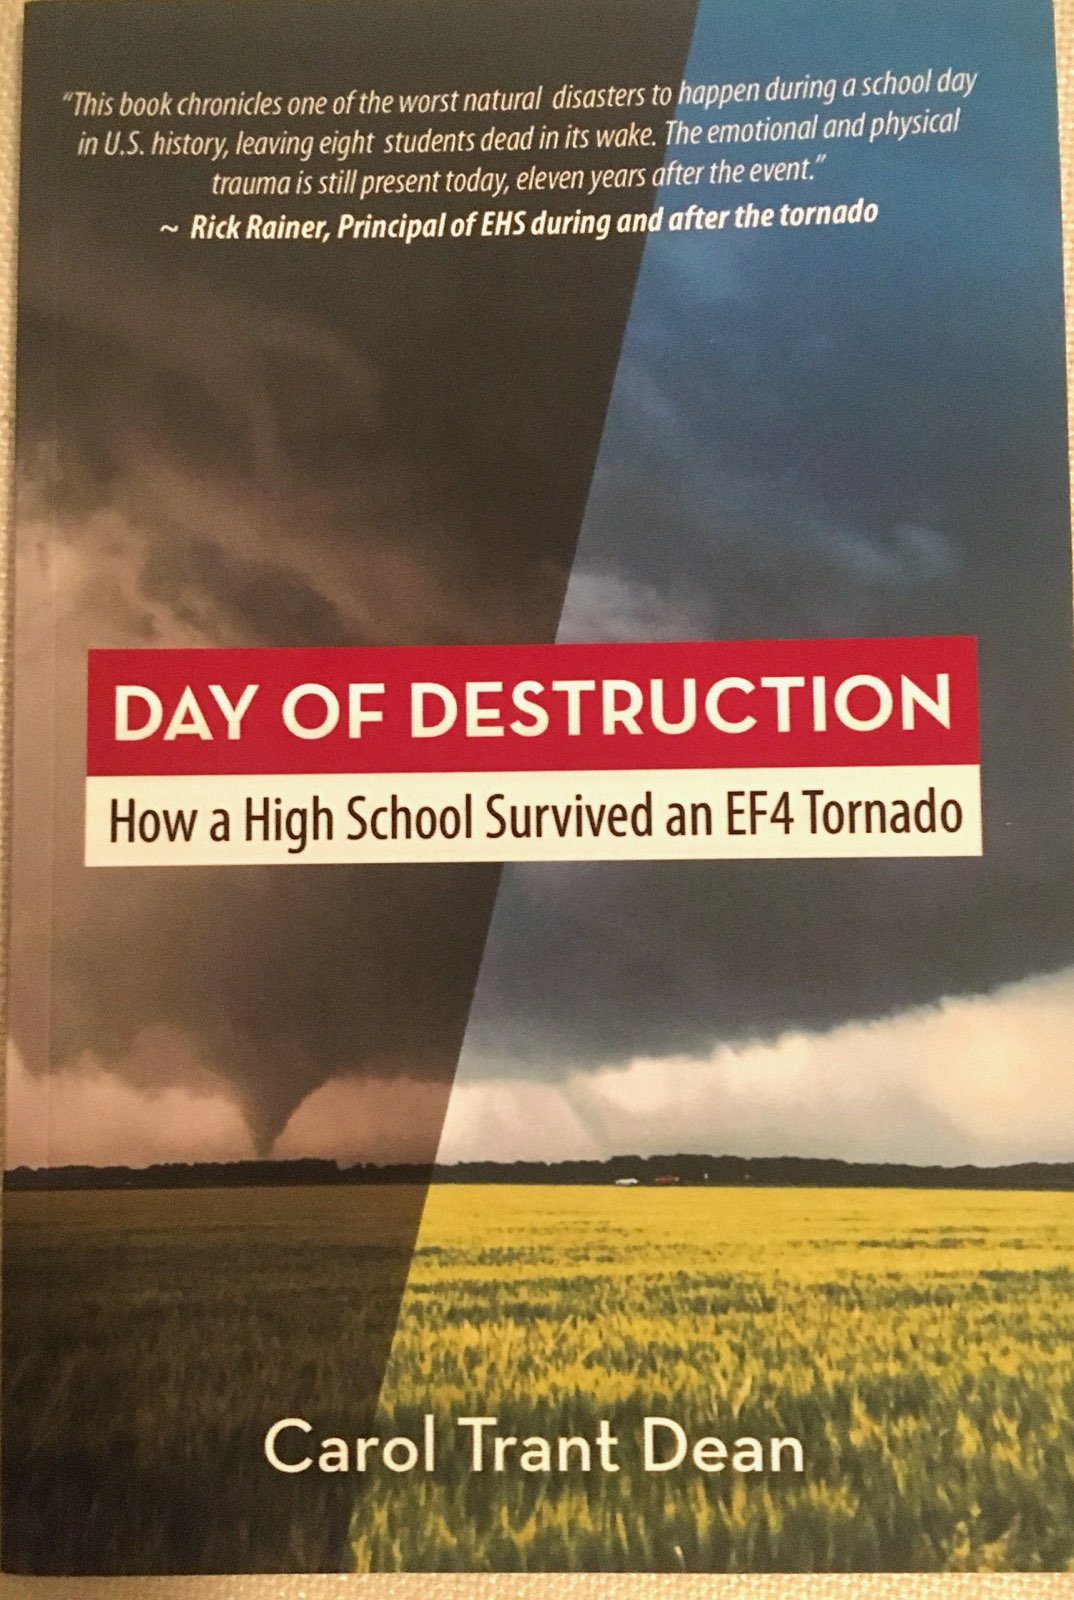 Day of Destruction: Coping with Tragedy From An EF4 Tornado